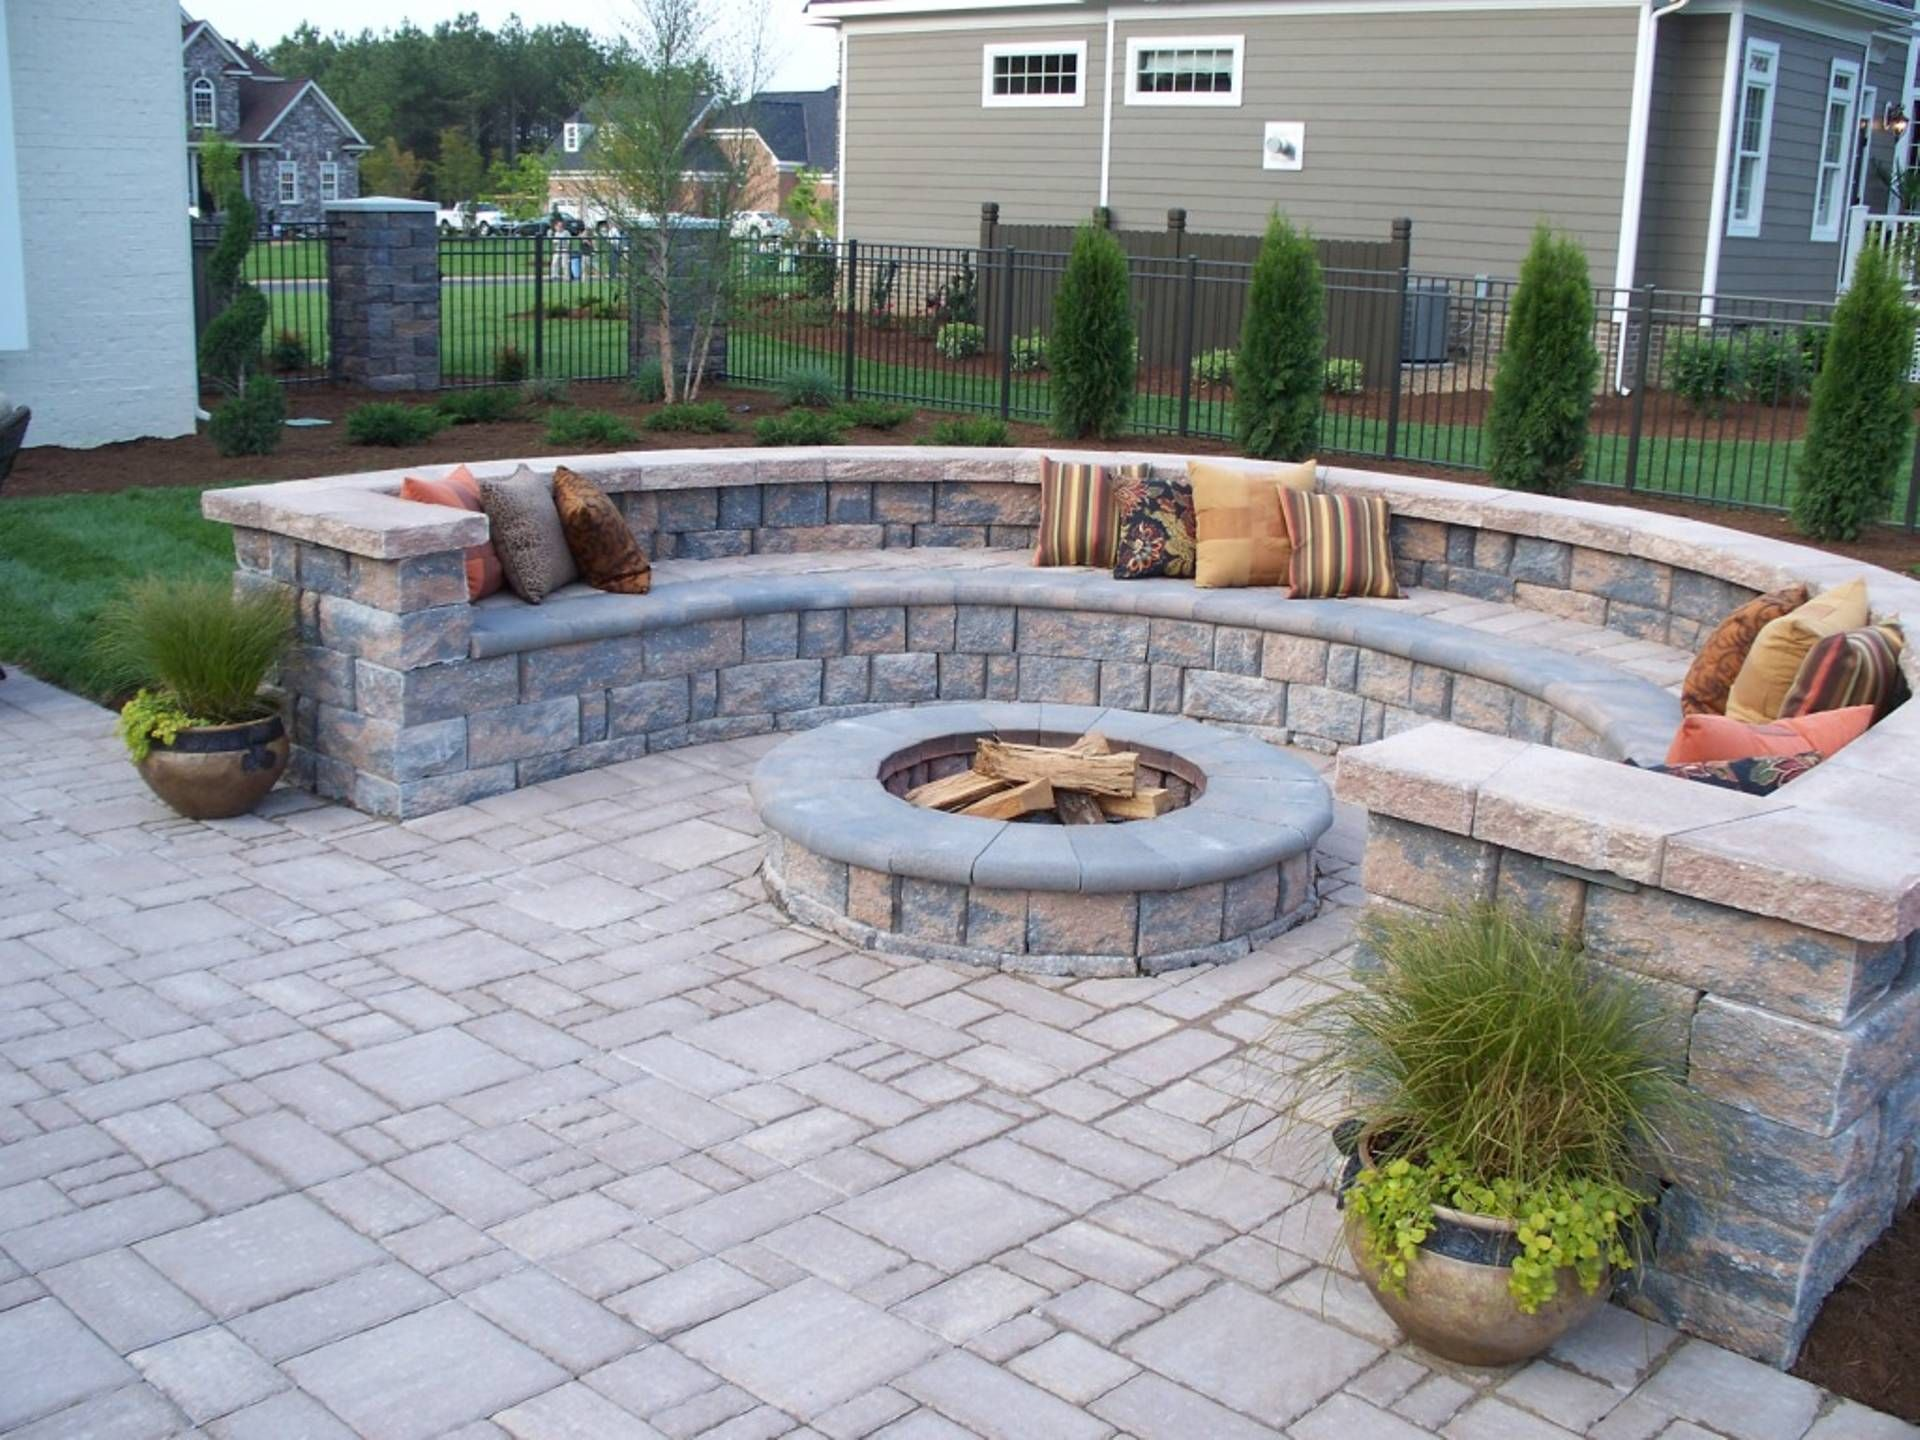 Paver patio with firepit and all around sitting wall for Paver patio ideas pictures